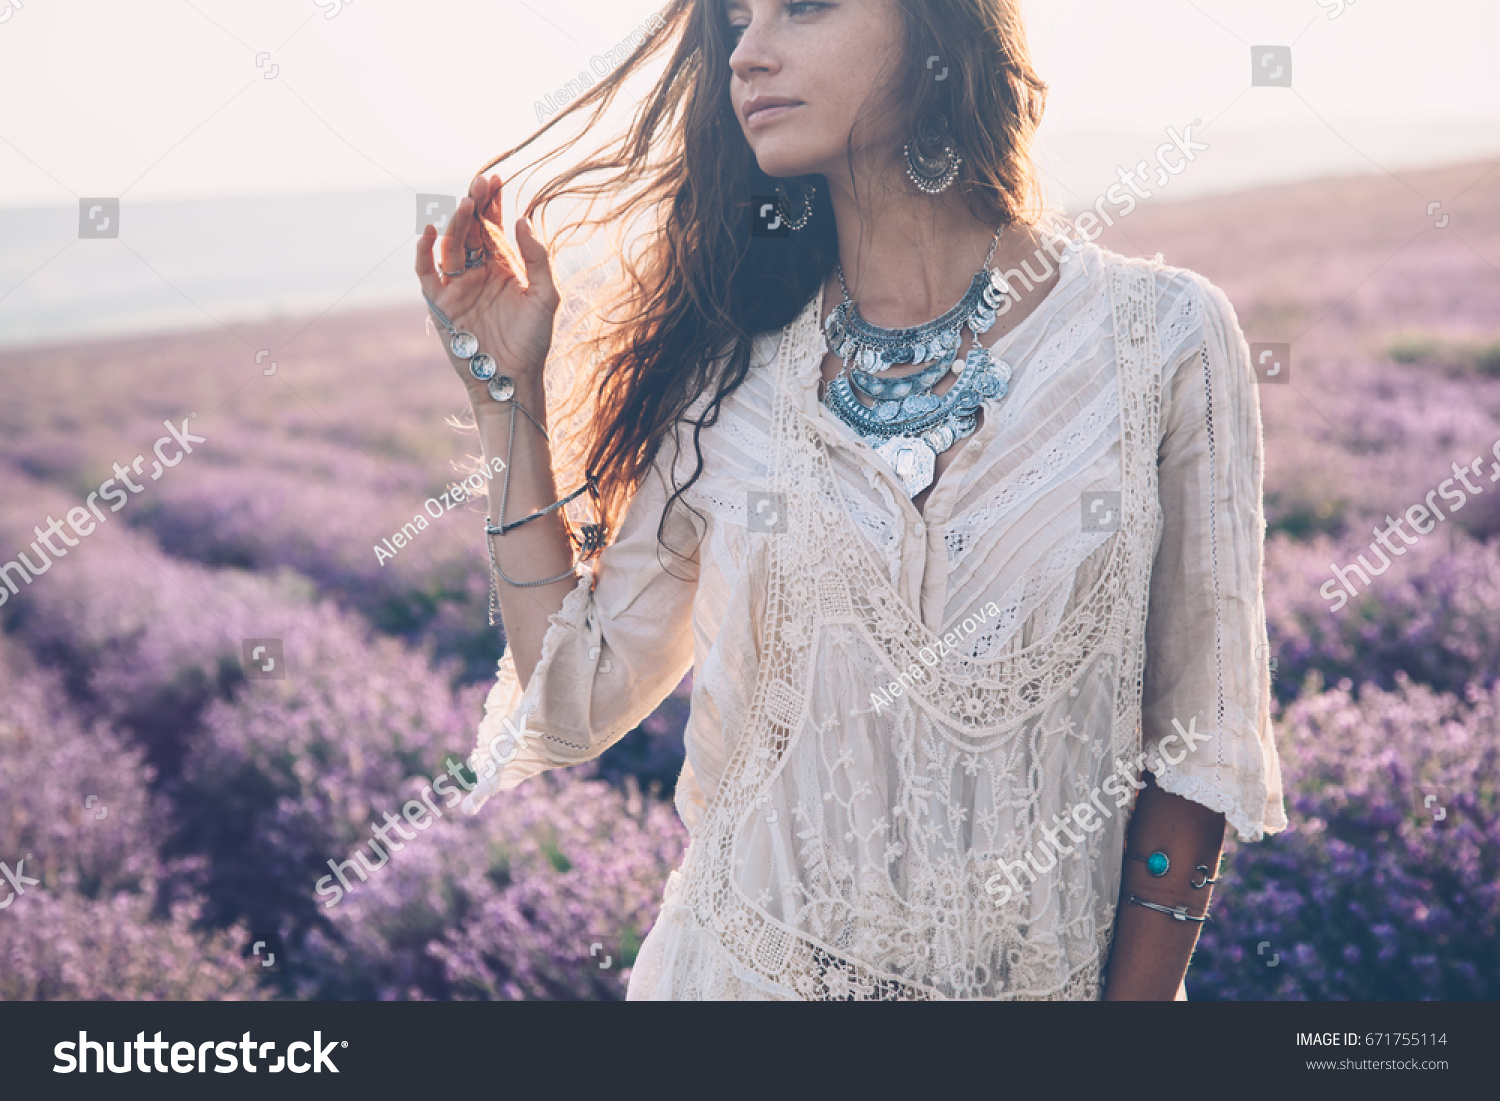 Beautiful Model Walking In Spring Or Summer Lavender Field Sunrise Backlit Boho Style Clothing